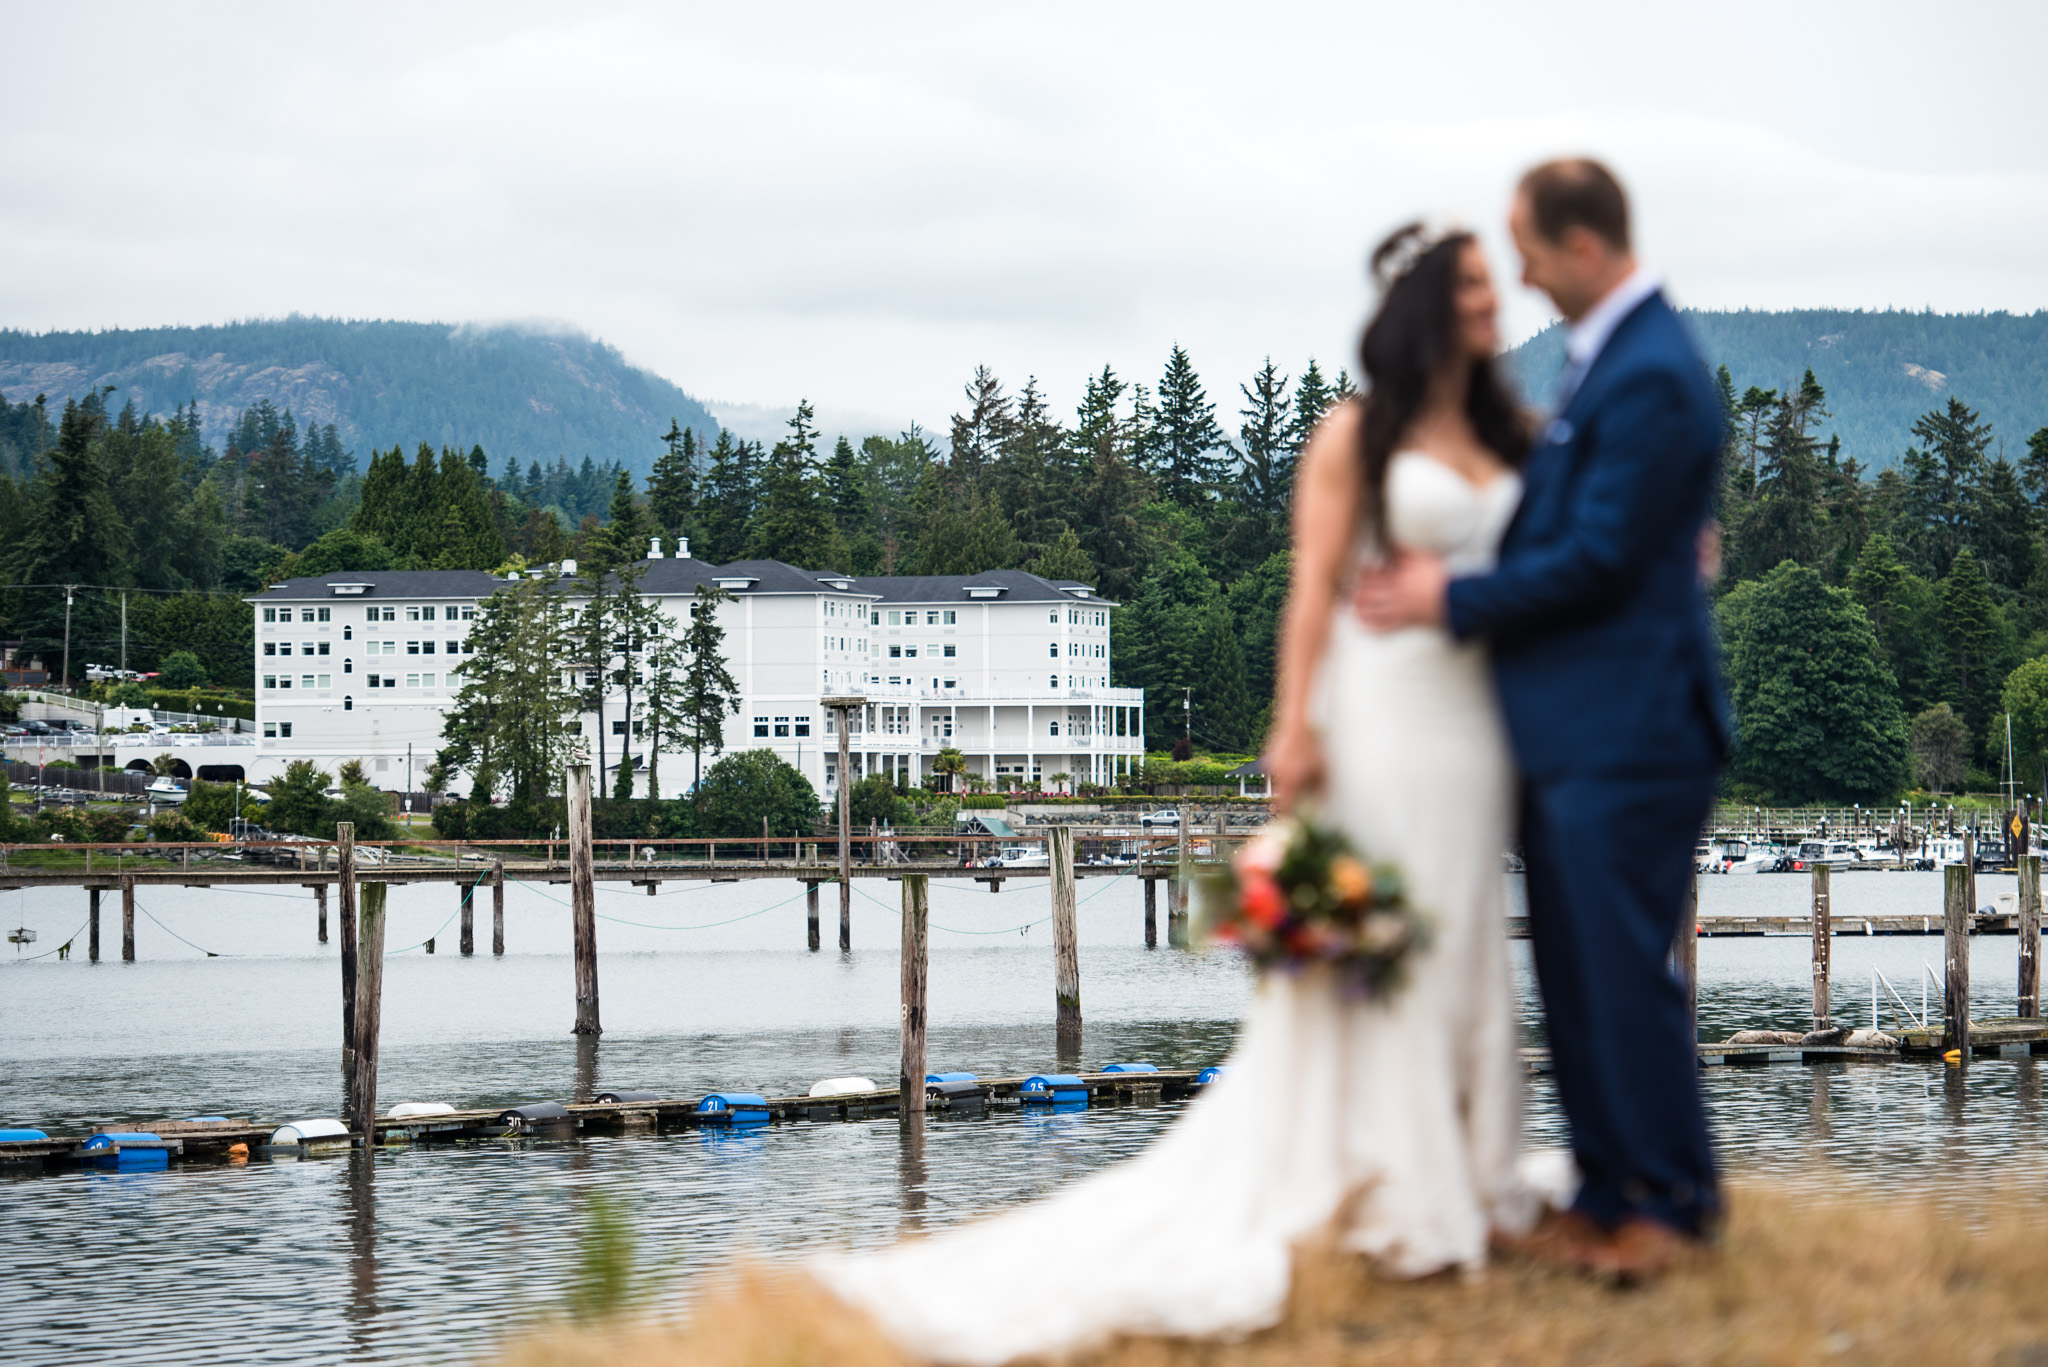 victoria-wedding-photographer-sooke-prestige-resort-wedding-38.jpg